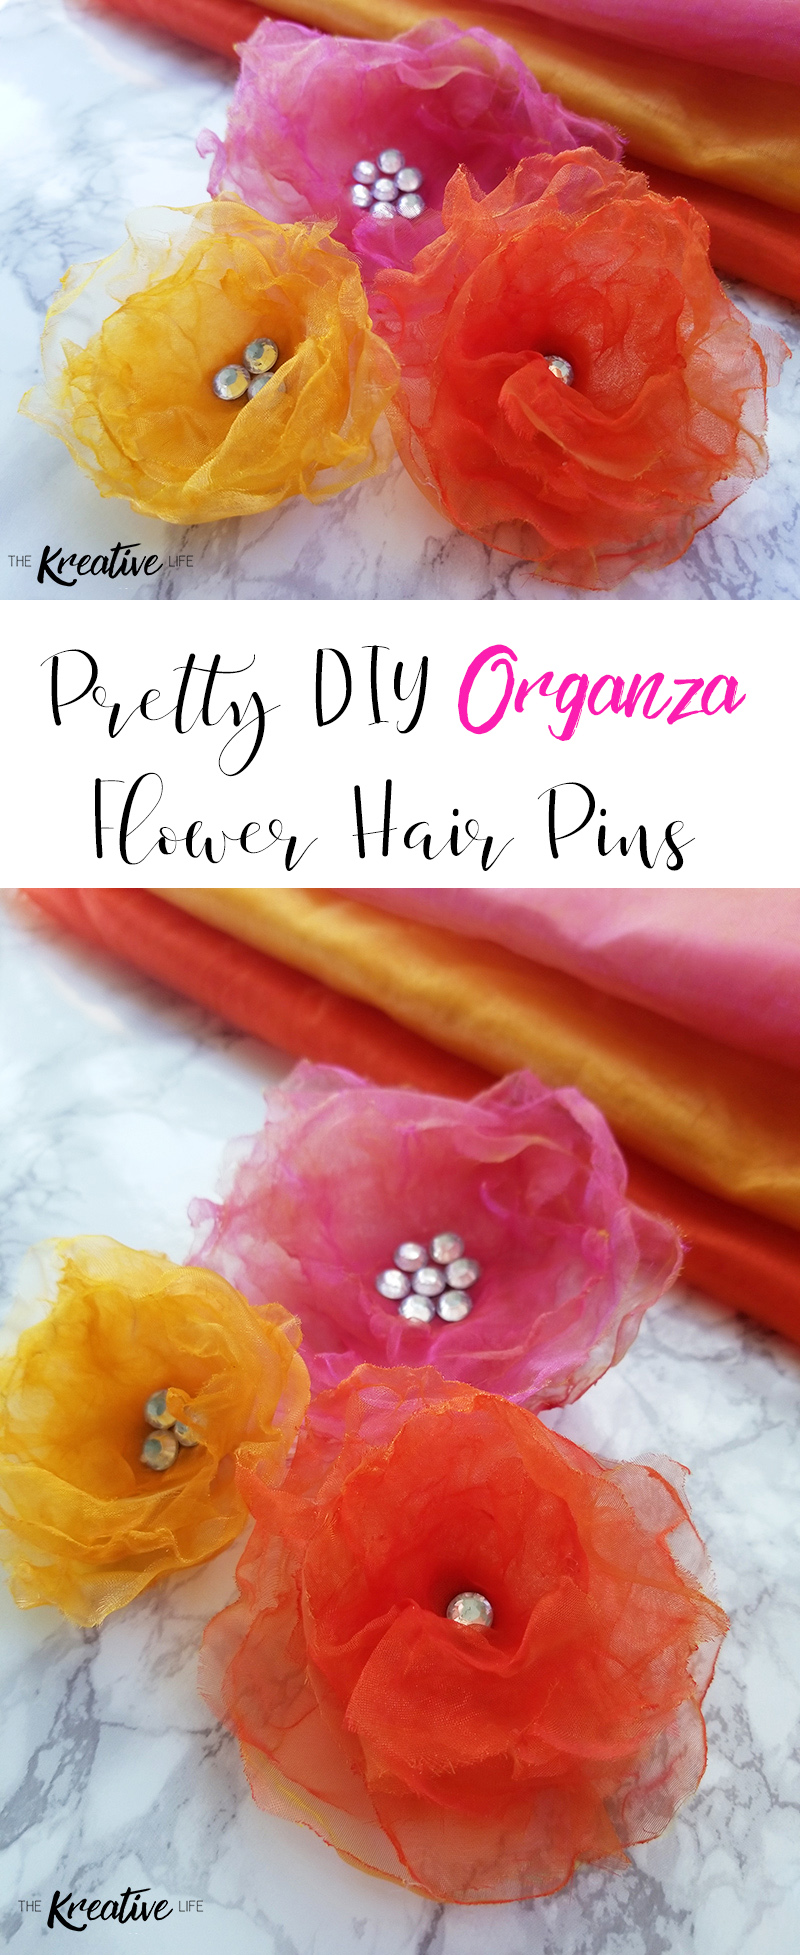 If you ever wanted to know how to make organza flower hair pins for weddings or bouquets this DIY Organza Flower Hair Pin tutorial is perfect! - The Kreative Life